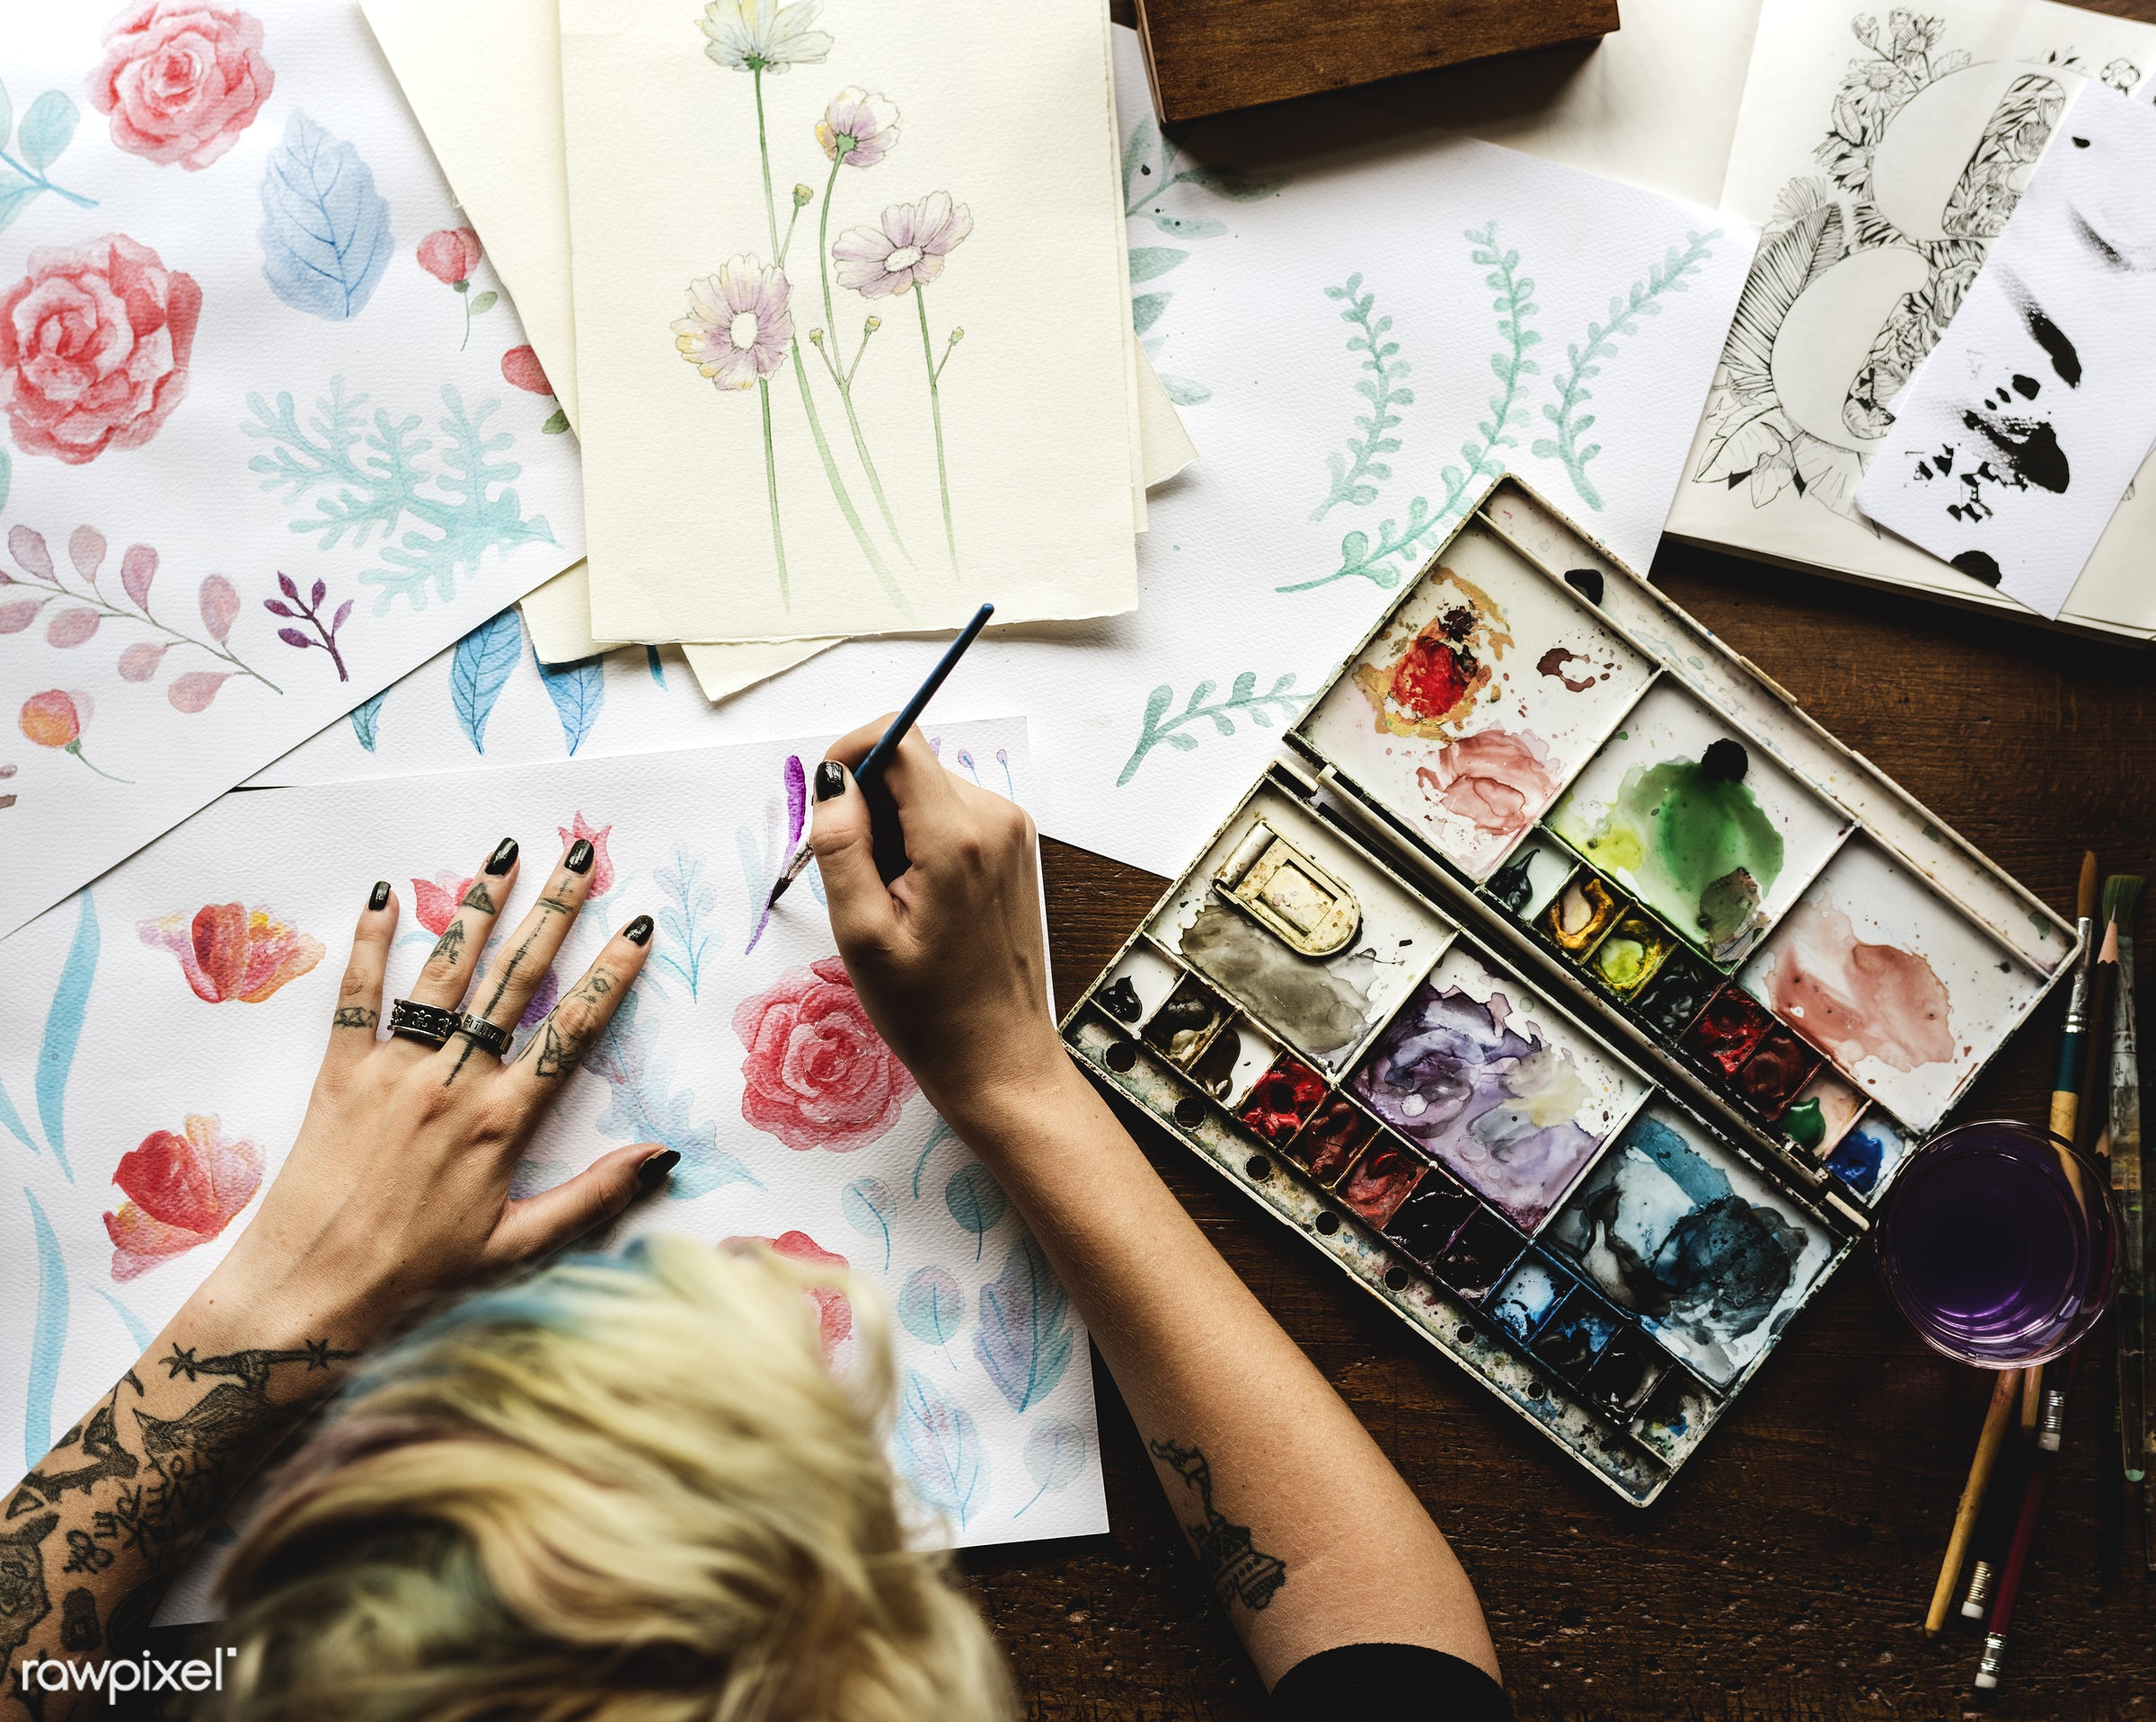 person, holding, colorful, paper, palette, creativity, people, drawing, multicolored, hands, woman, artist, tattoo, aerial...